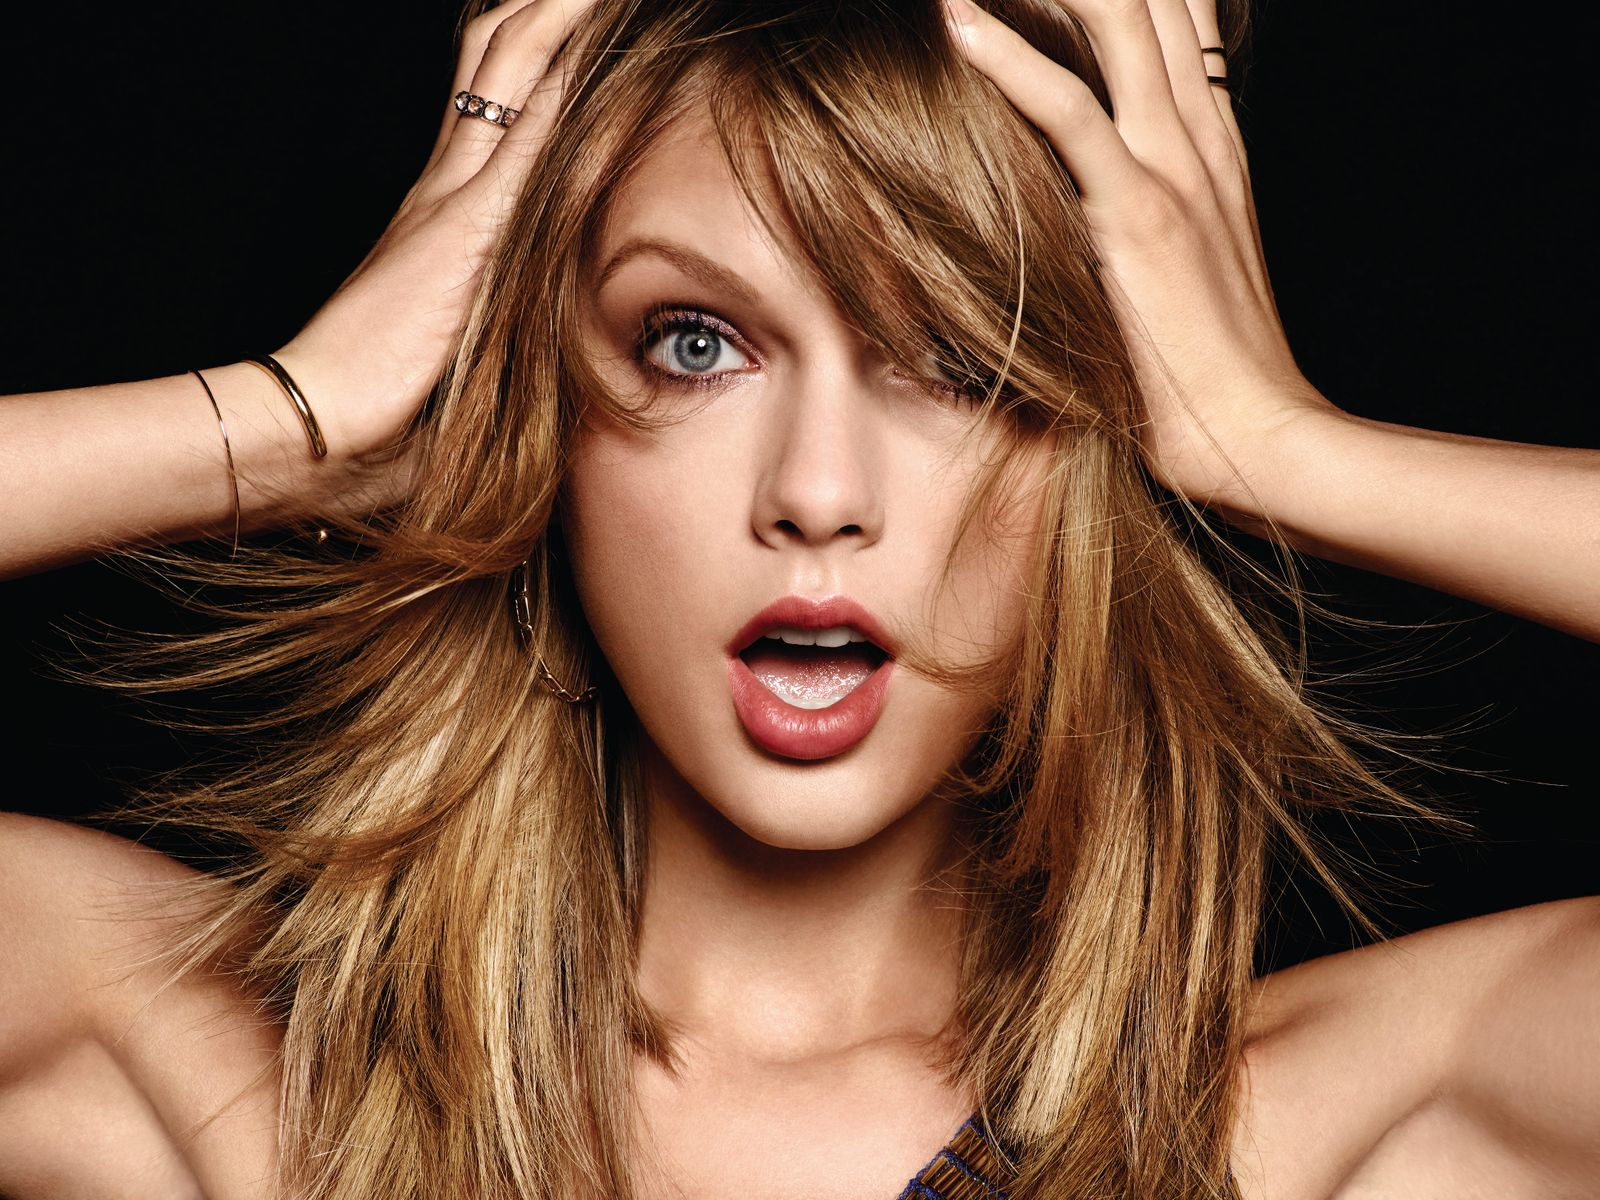 09-taylor-swift-ranking-feature.nocrop.w